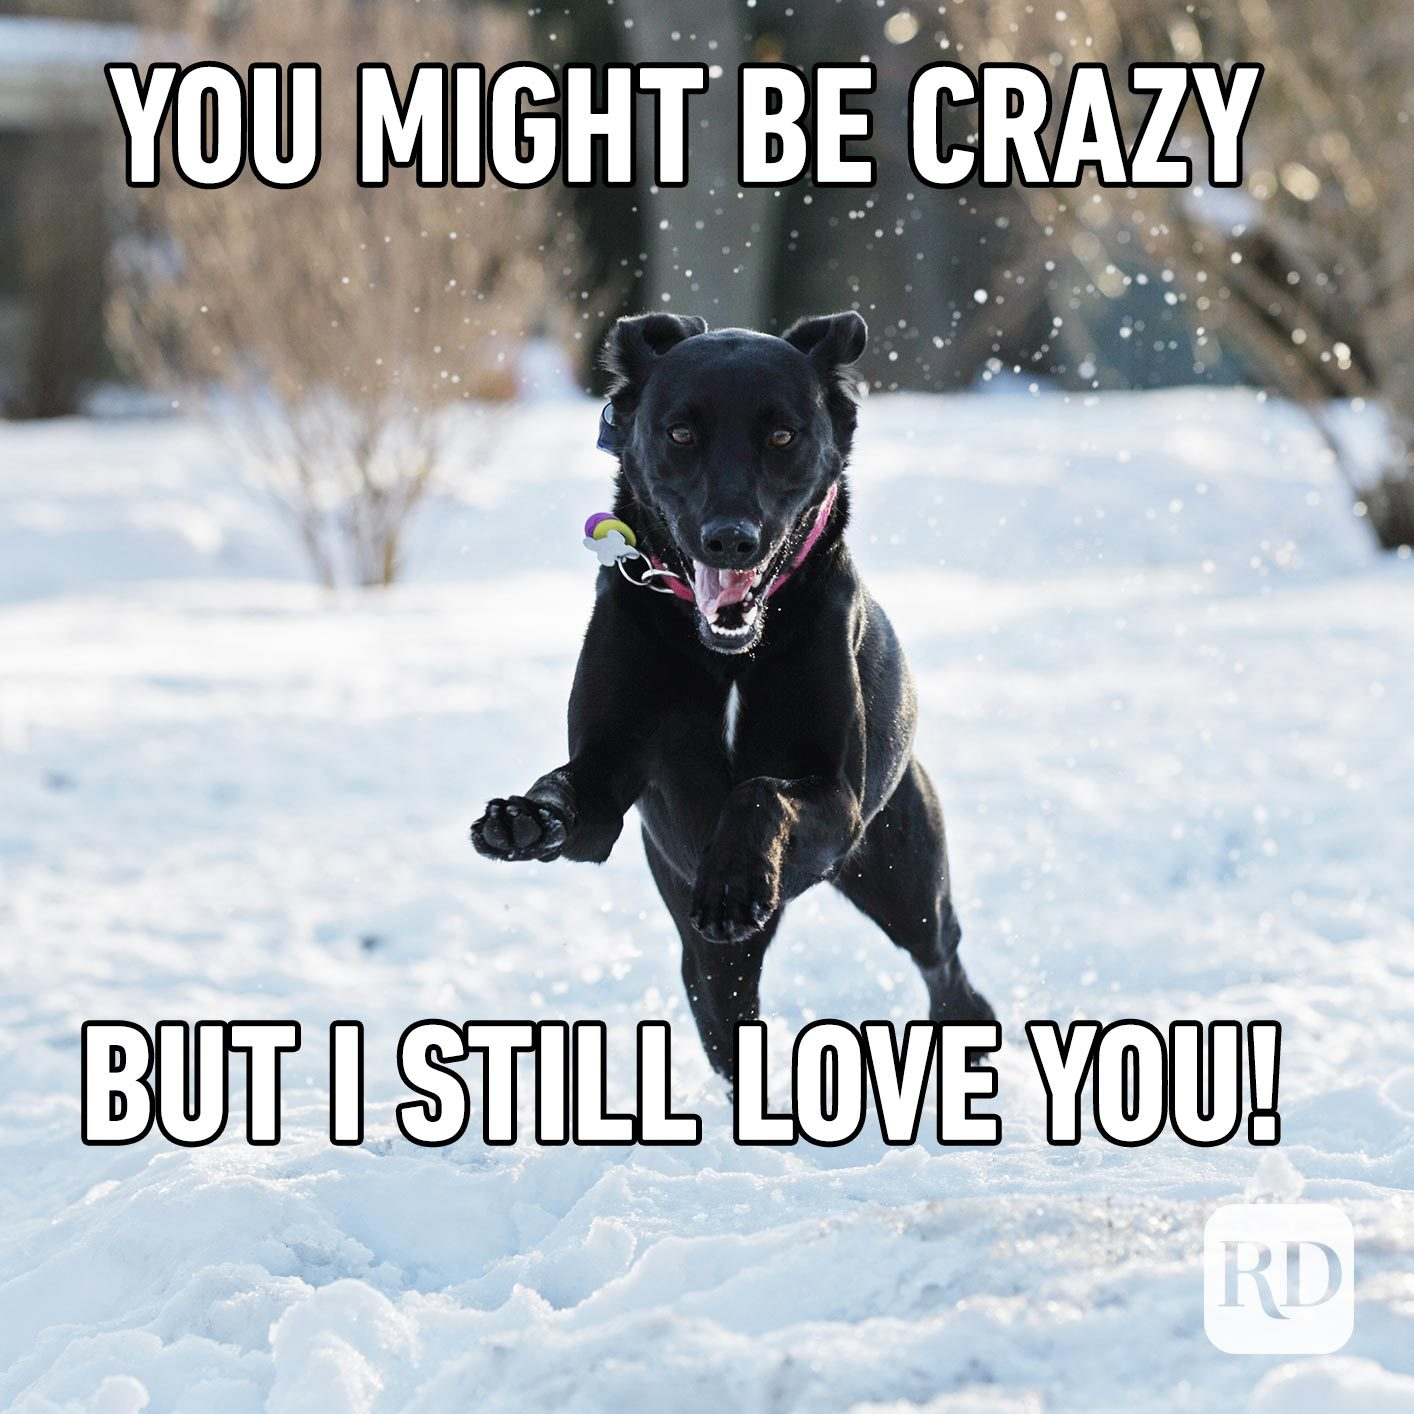 Dog leaping over snow. Meme text: You might be crazy, but I still love you!